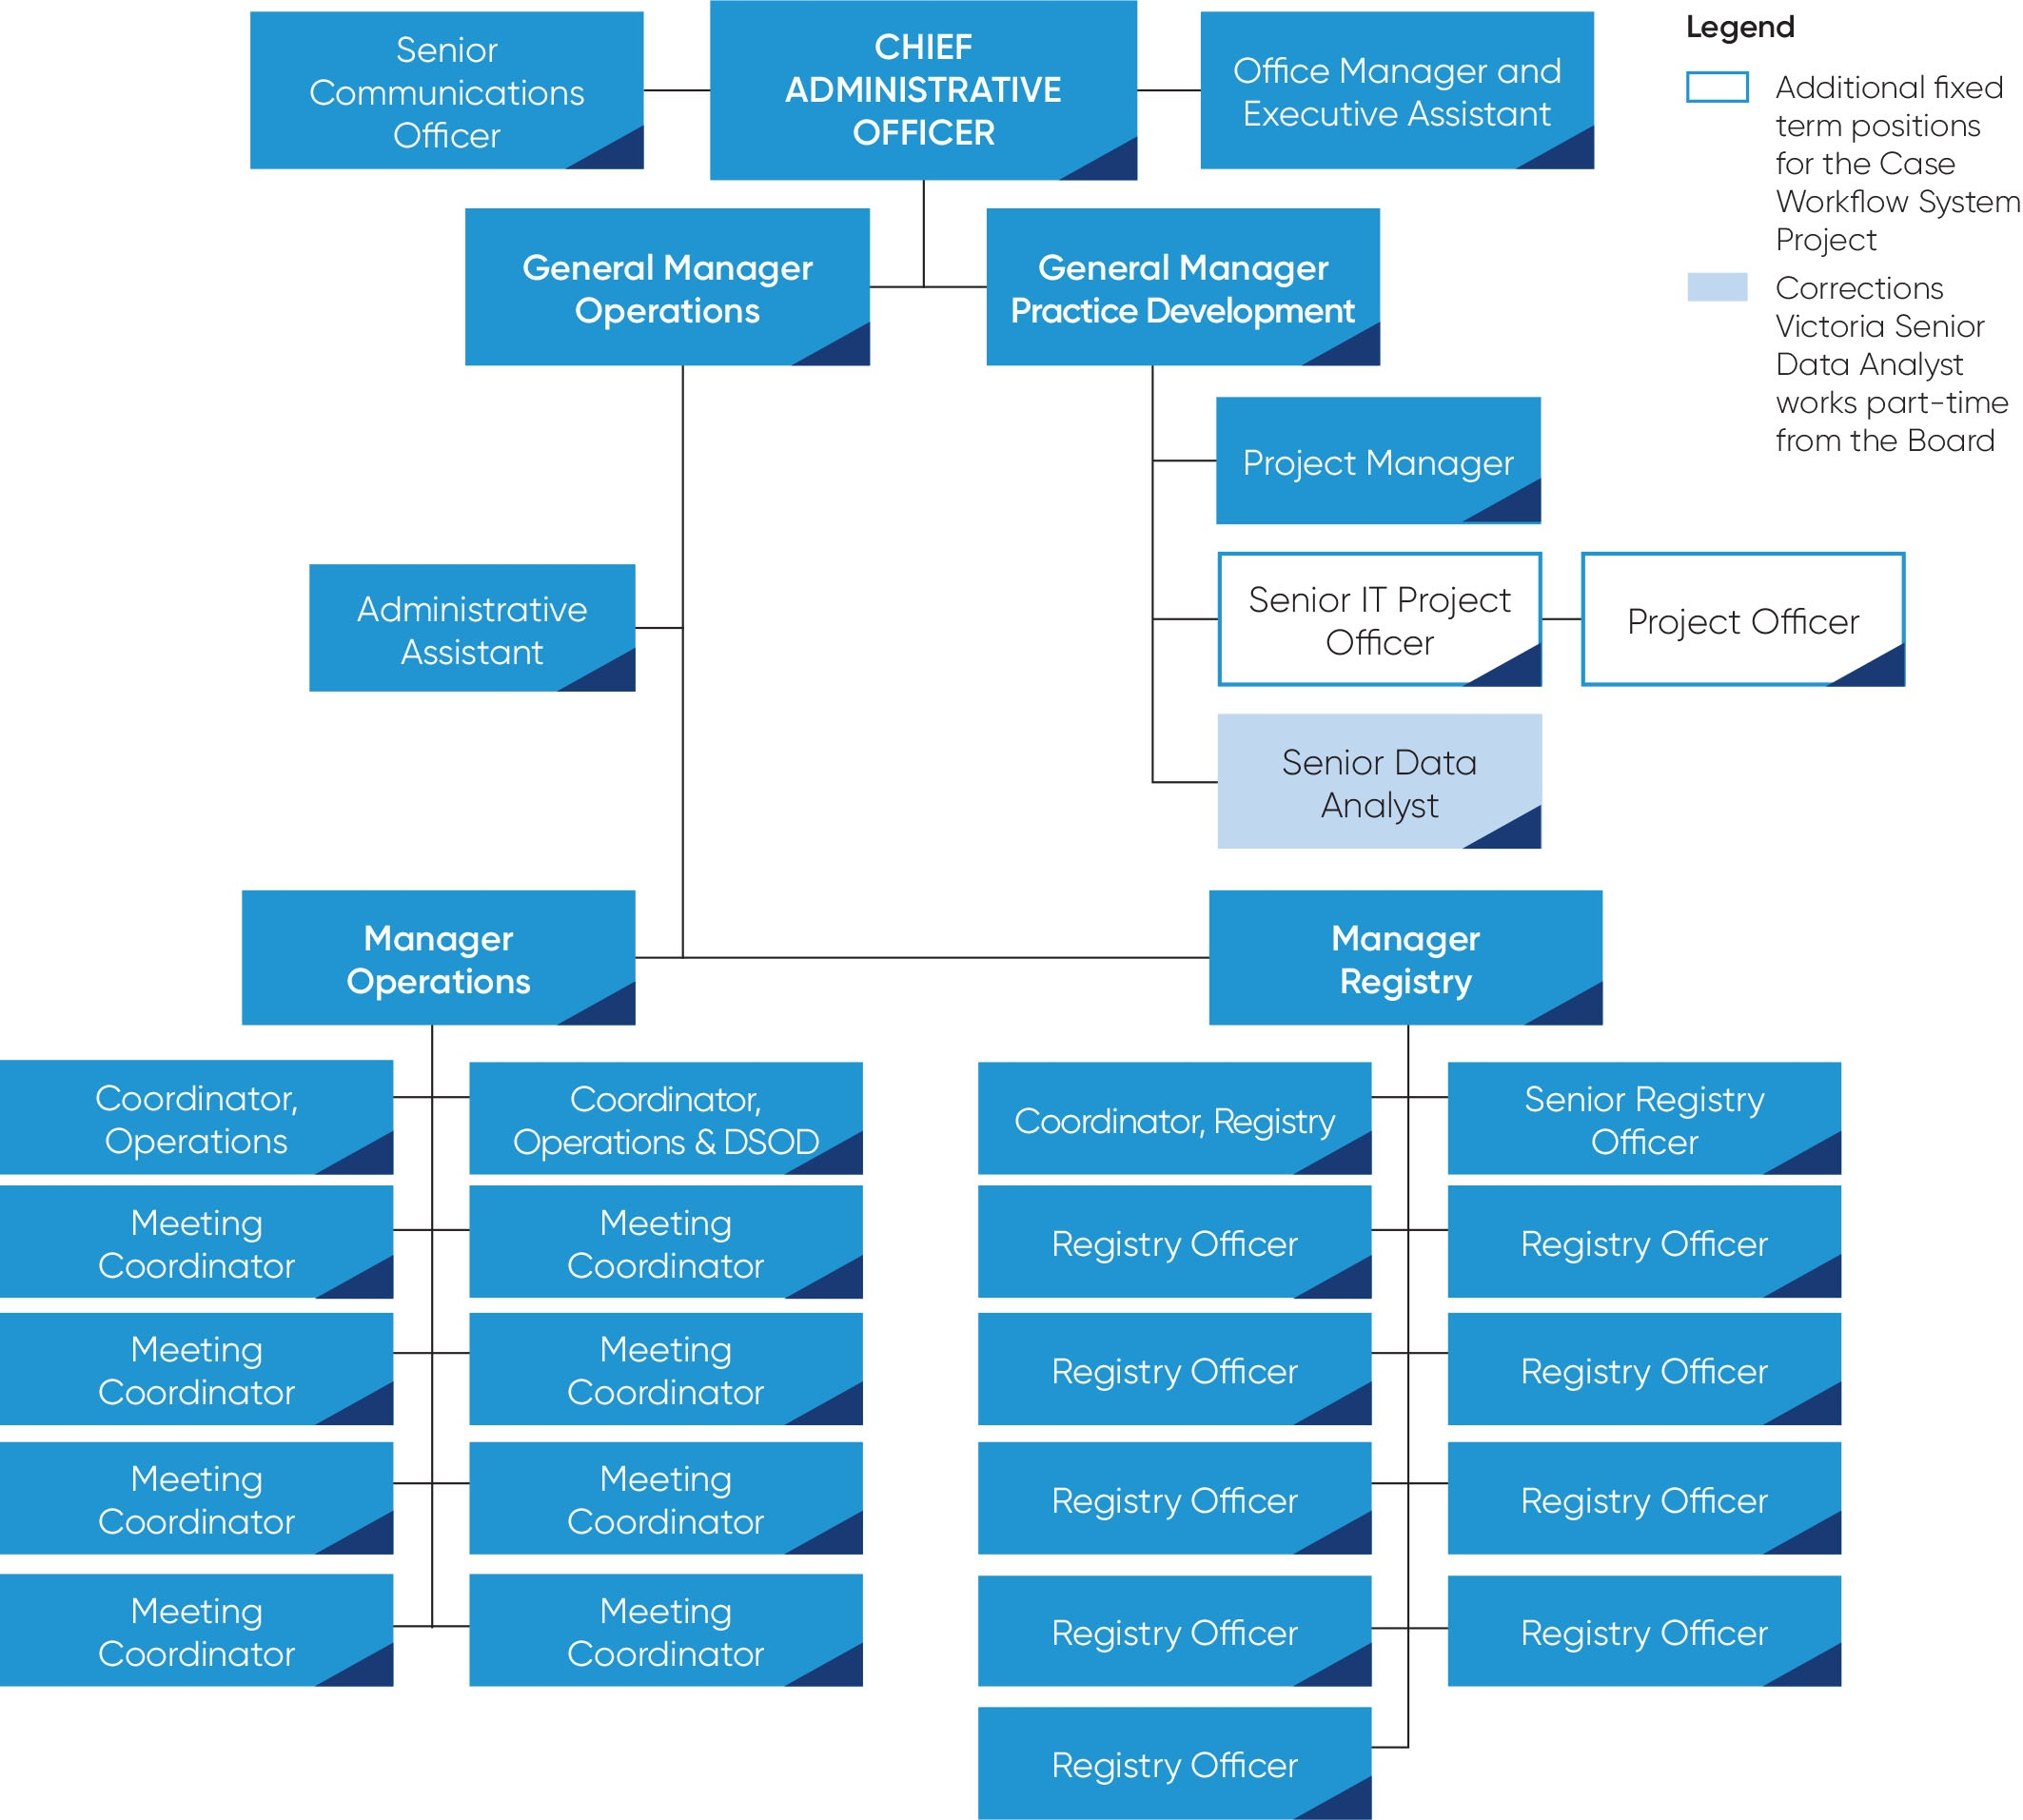 This is an image of the Board's organisational chart